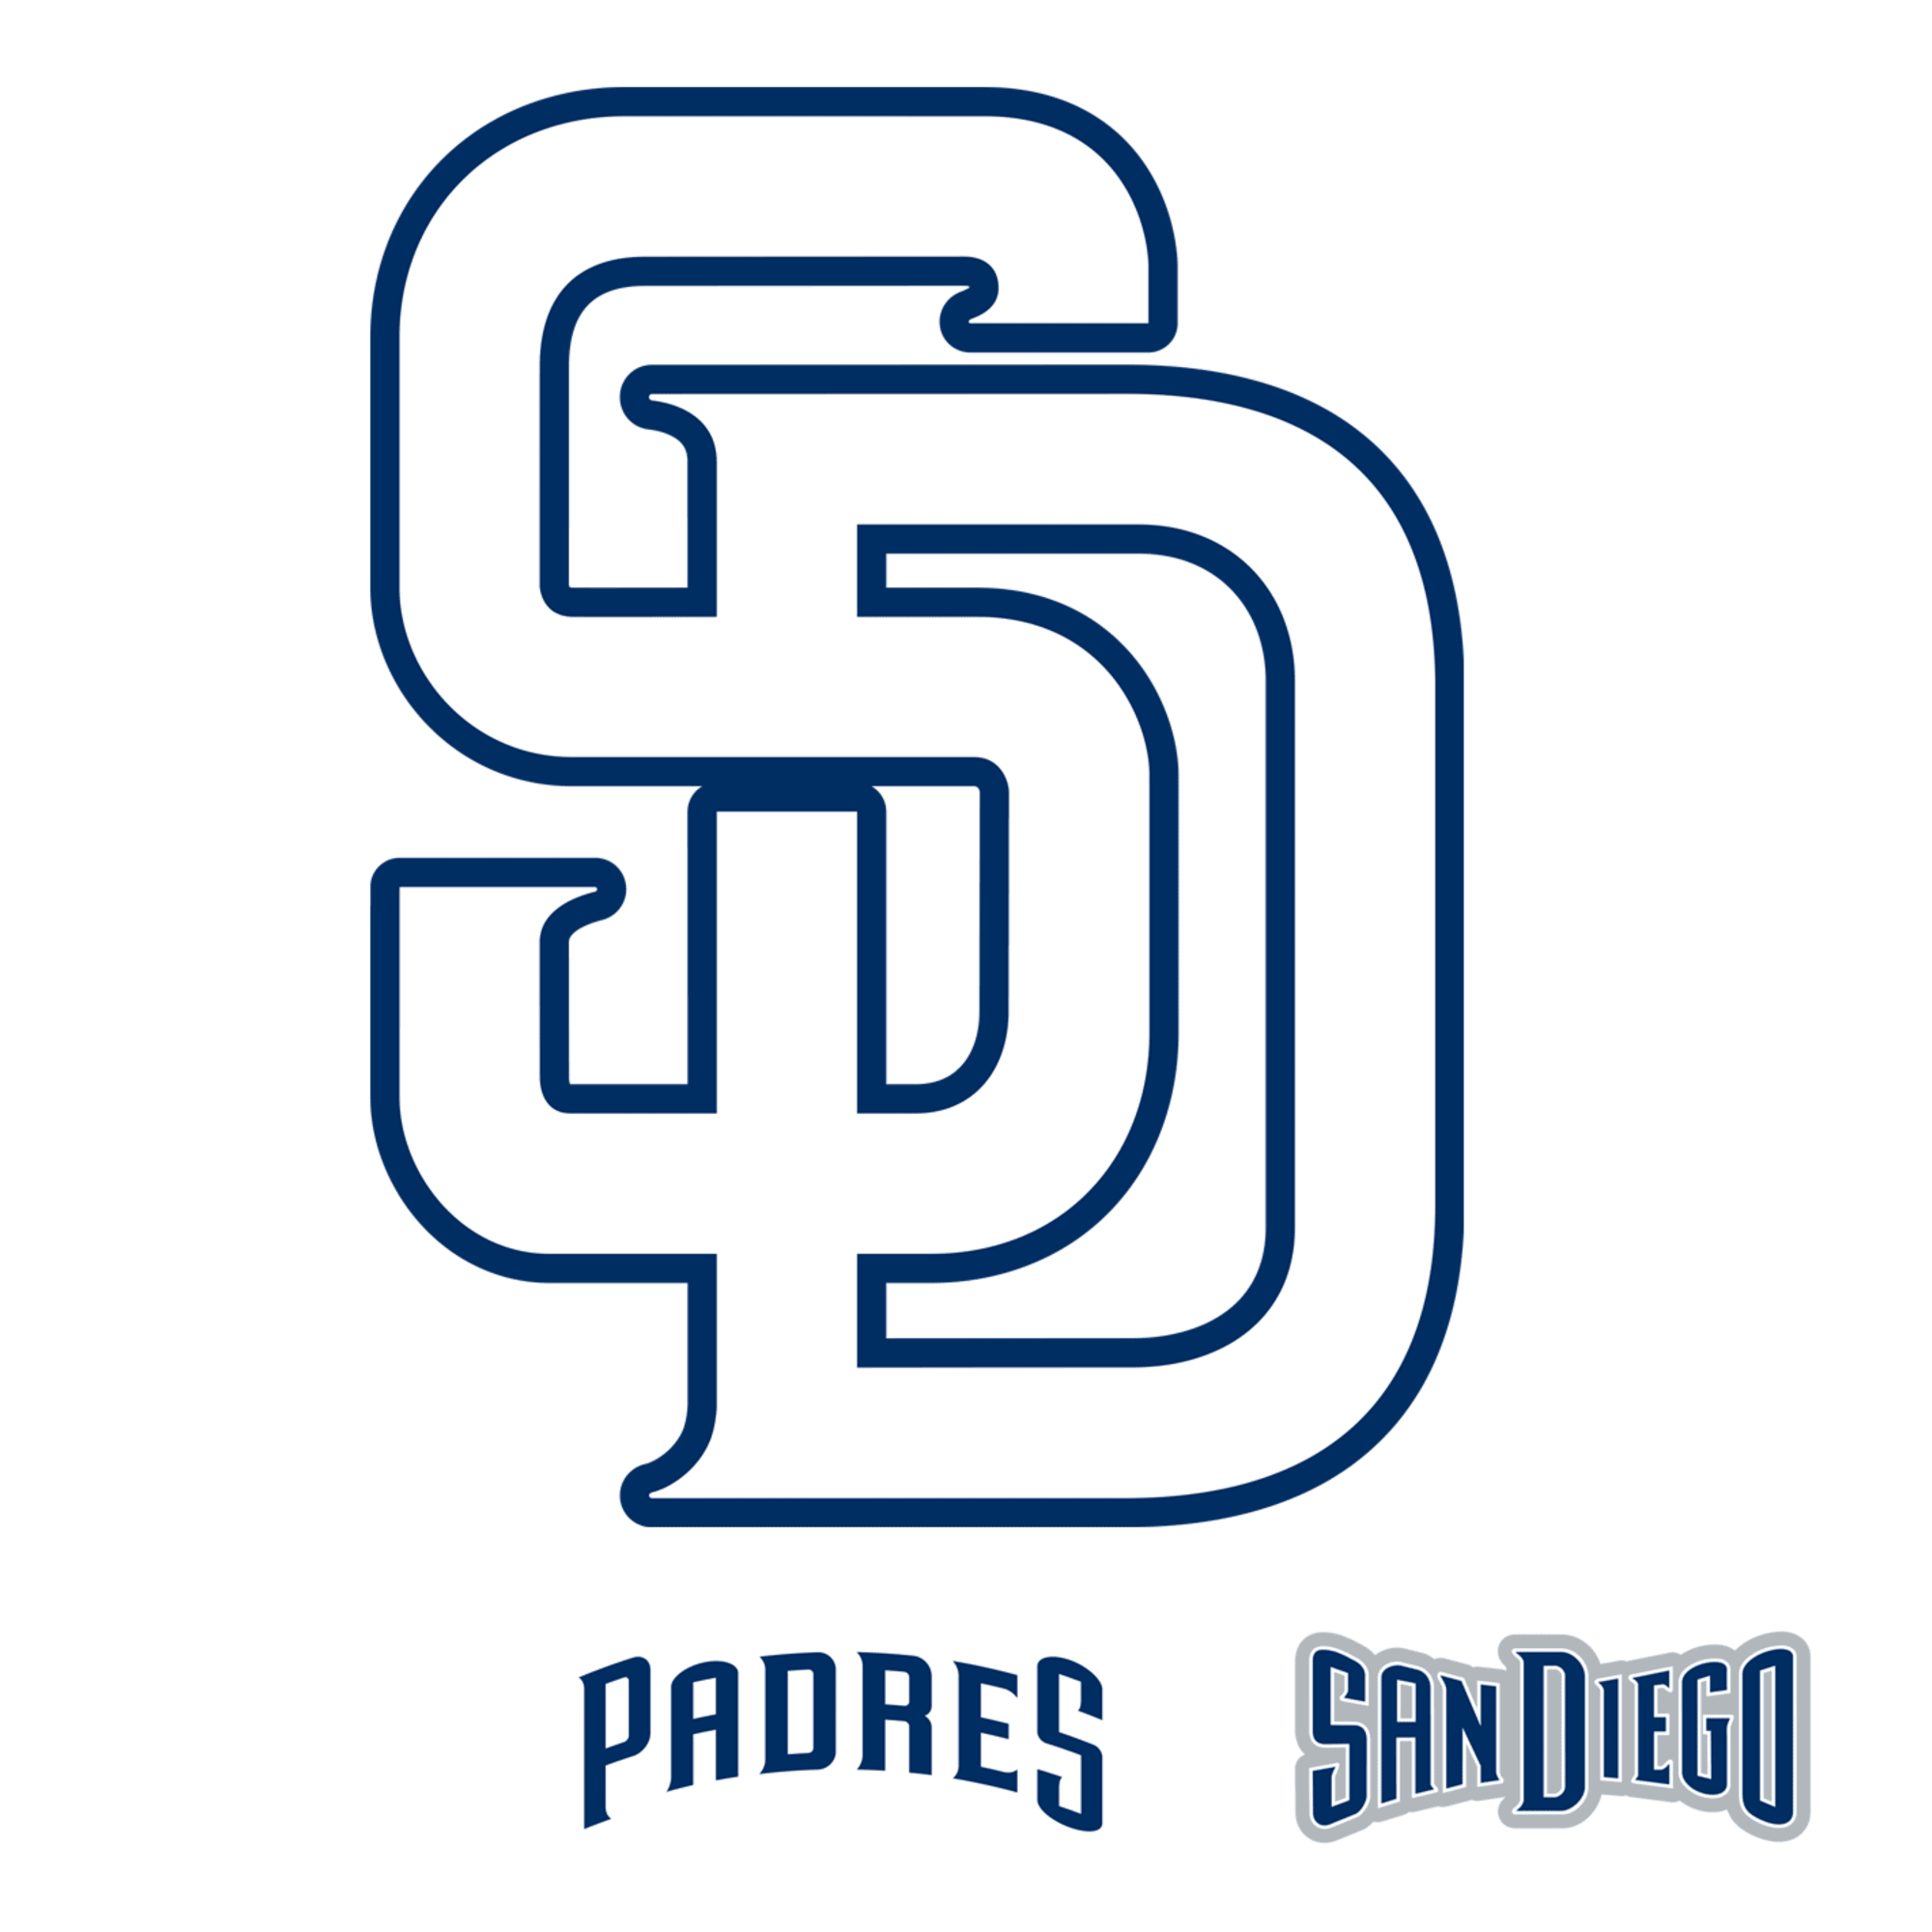 San Diego Padres Logo Large Officially Licensed Mlb Removable Wall Decal San Diego Padres Removable Wall Decals Diego